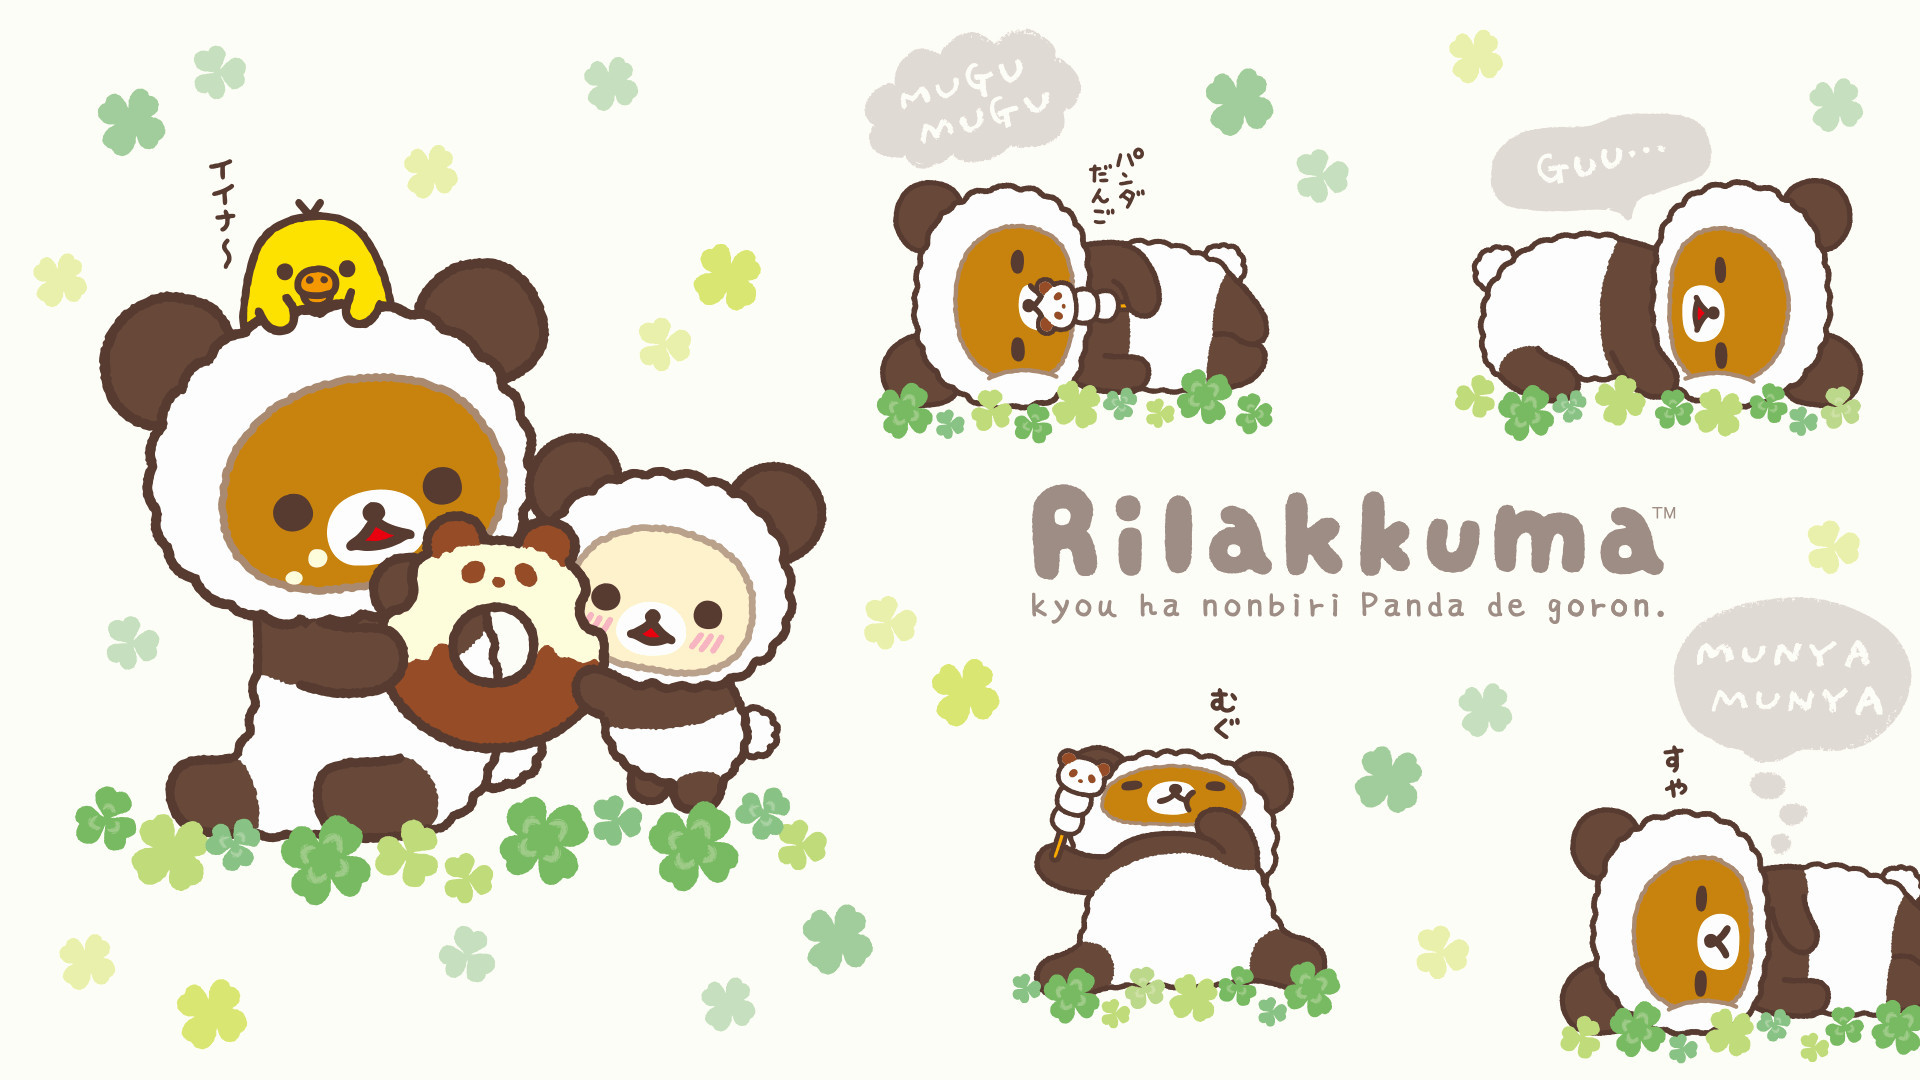 Res: 1920x1080, Panda iPhone X Wallpaper New Rilakkuma Wallpapers Wallpaper Cave Of Panda  iPhone X Wallpaper New Rilakkuma